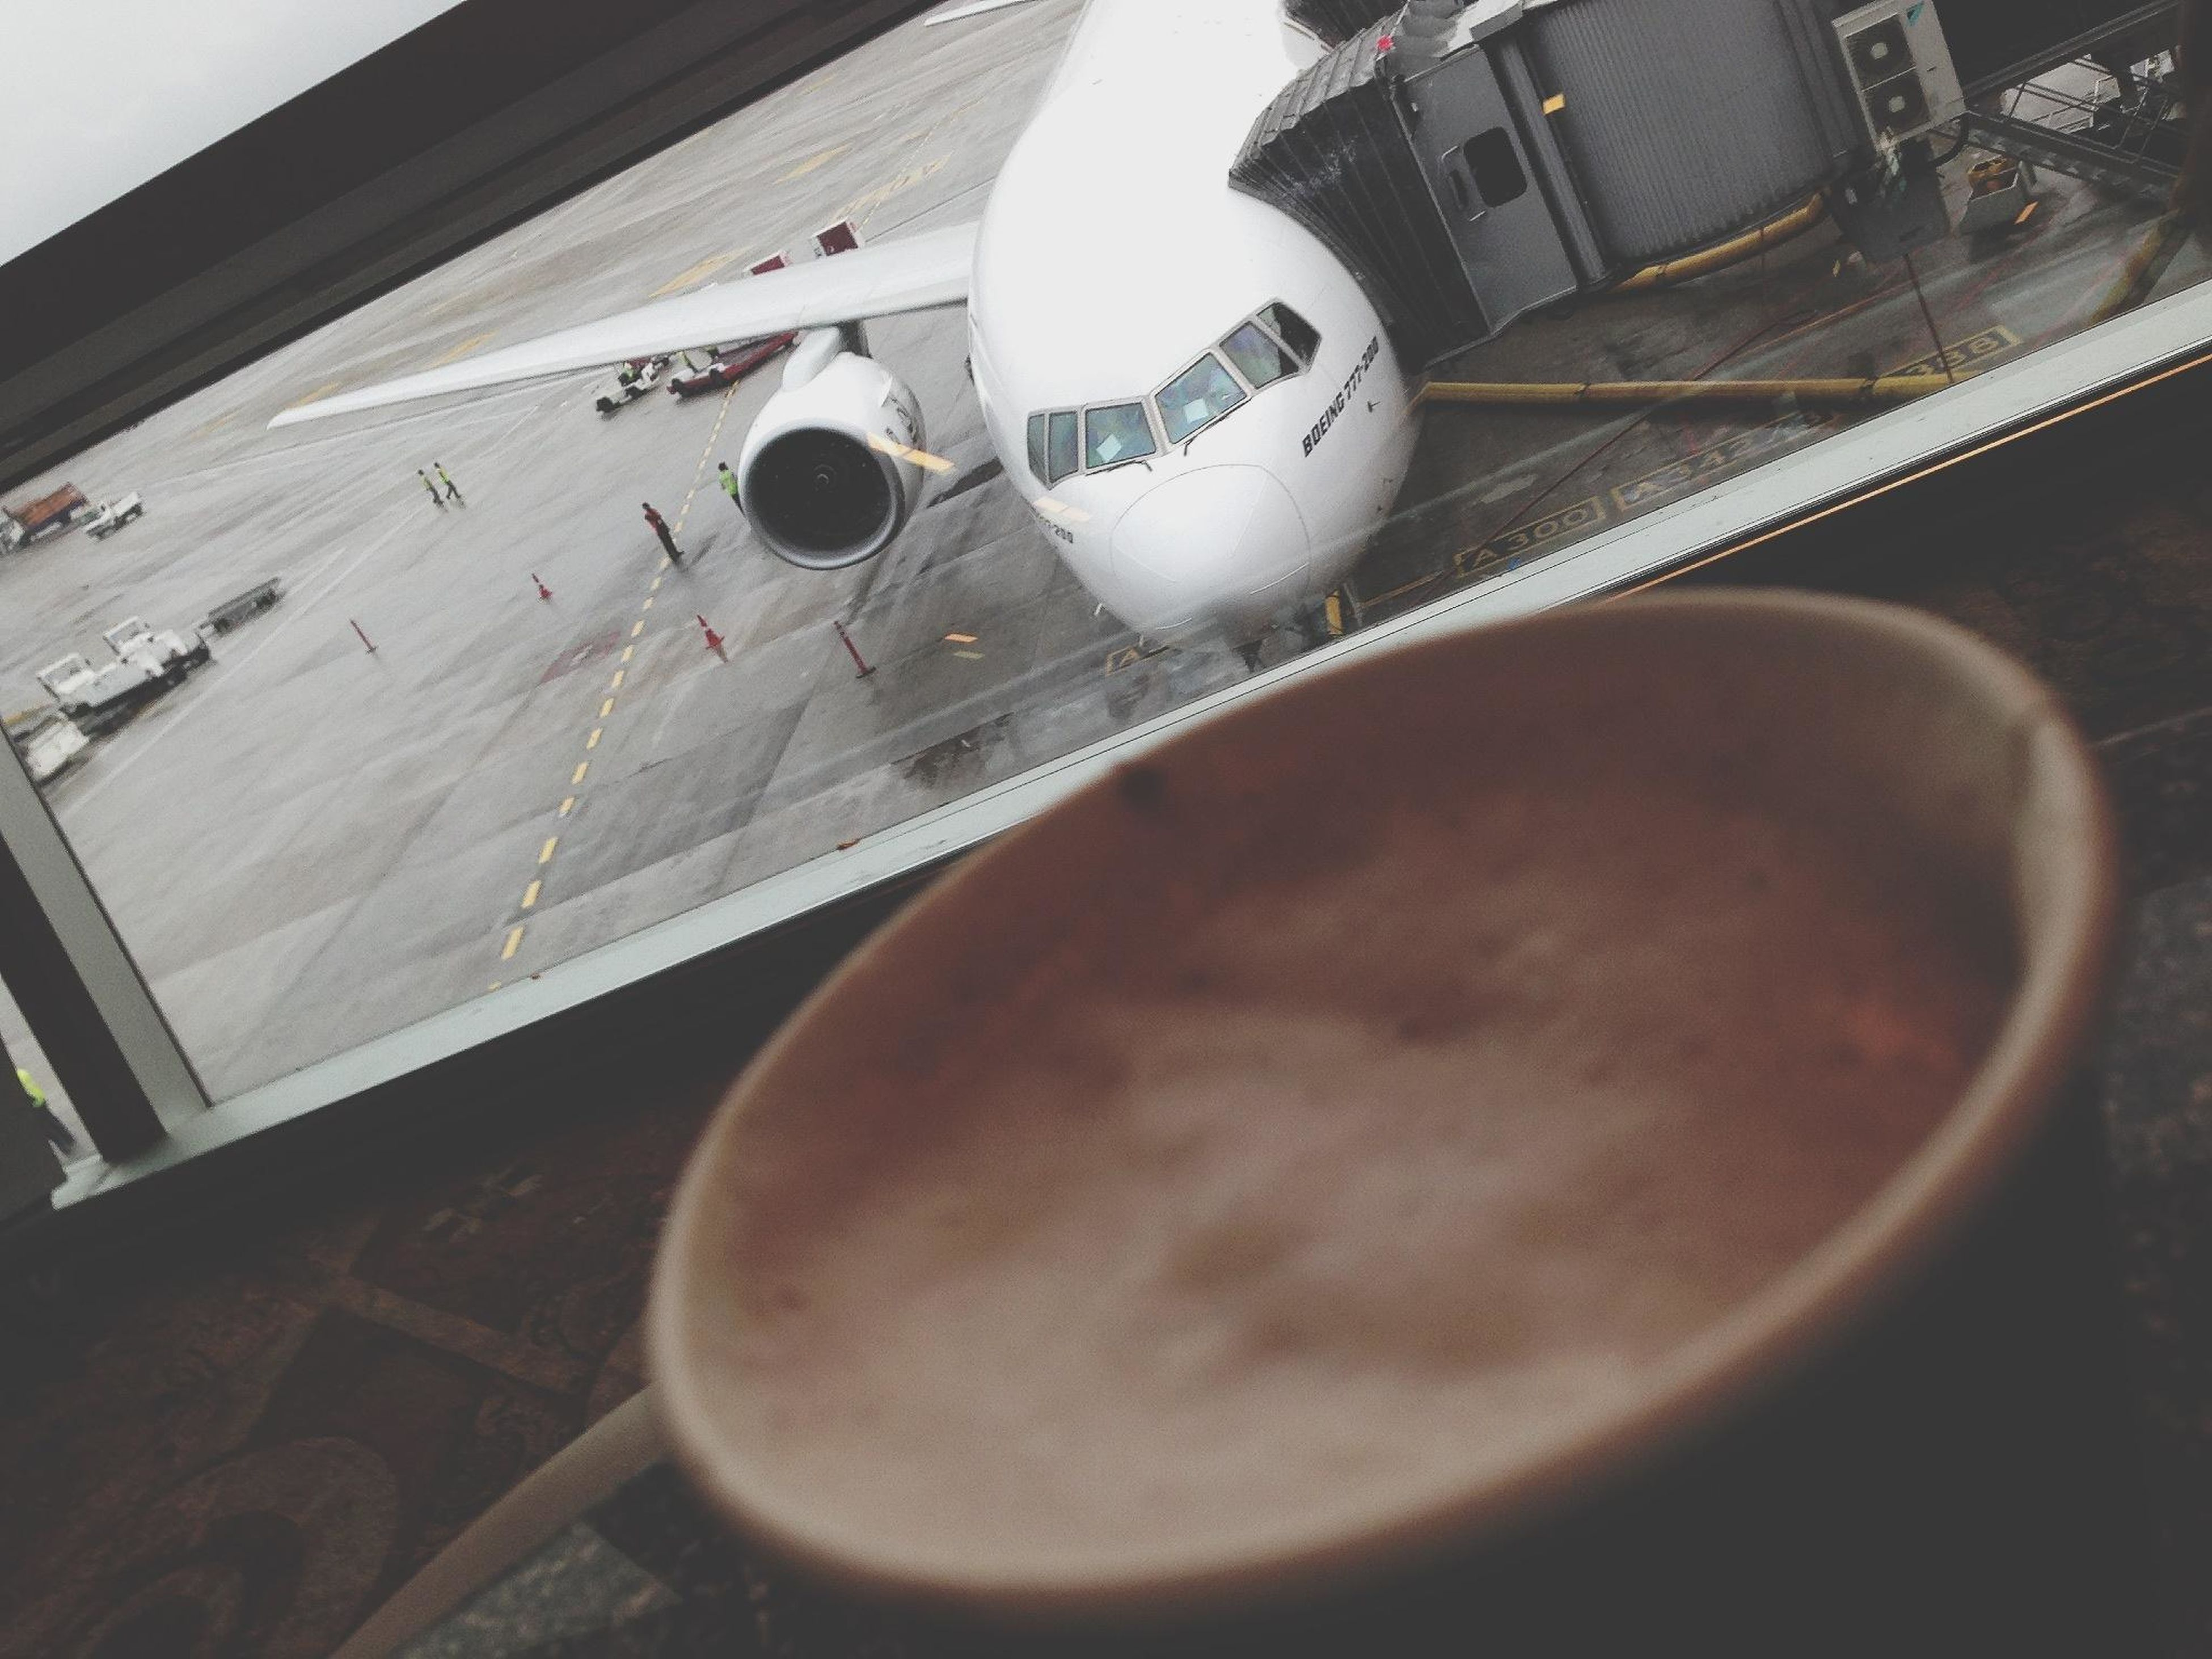 indoors, close-up, transportation, part of, air vehicle, high angle view, technology, table, airplane, mode of transport, reflection, glass - material, no people, metal, cropped, communication, day, still life, number, window